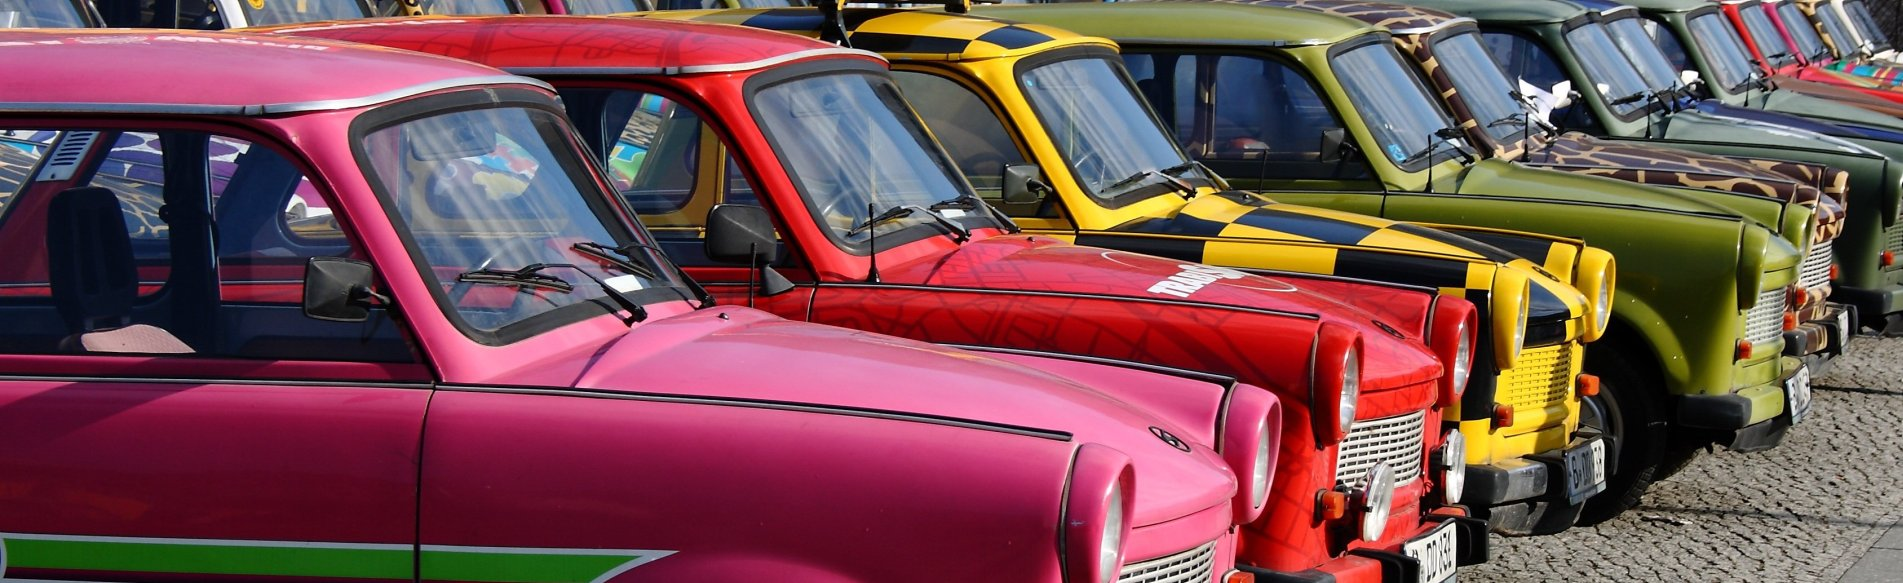 Trabi-Tour durch Berlin in der Gruppe